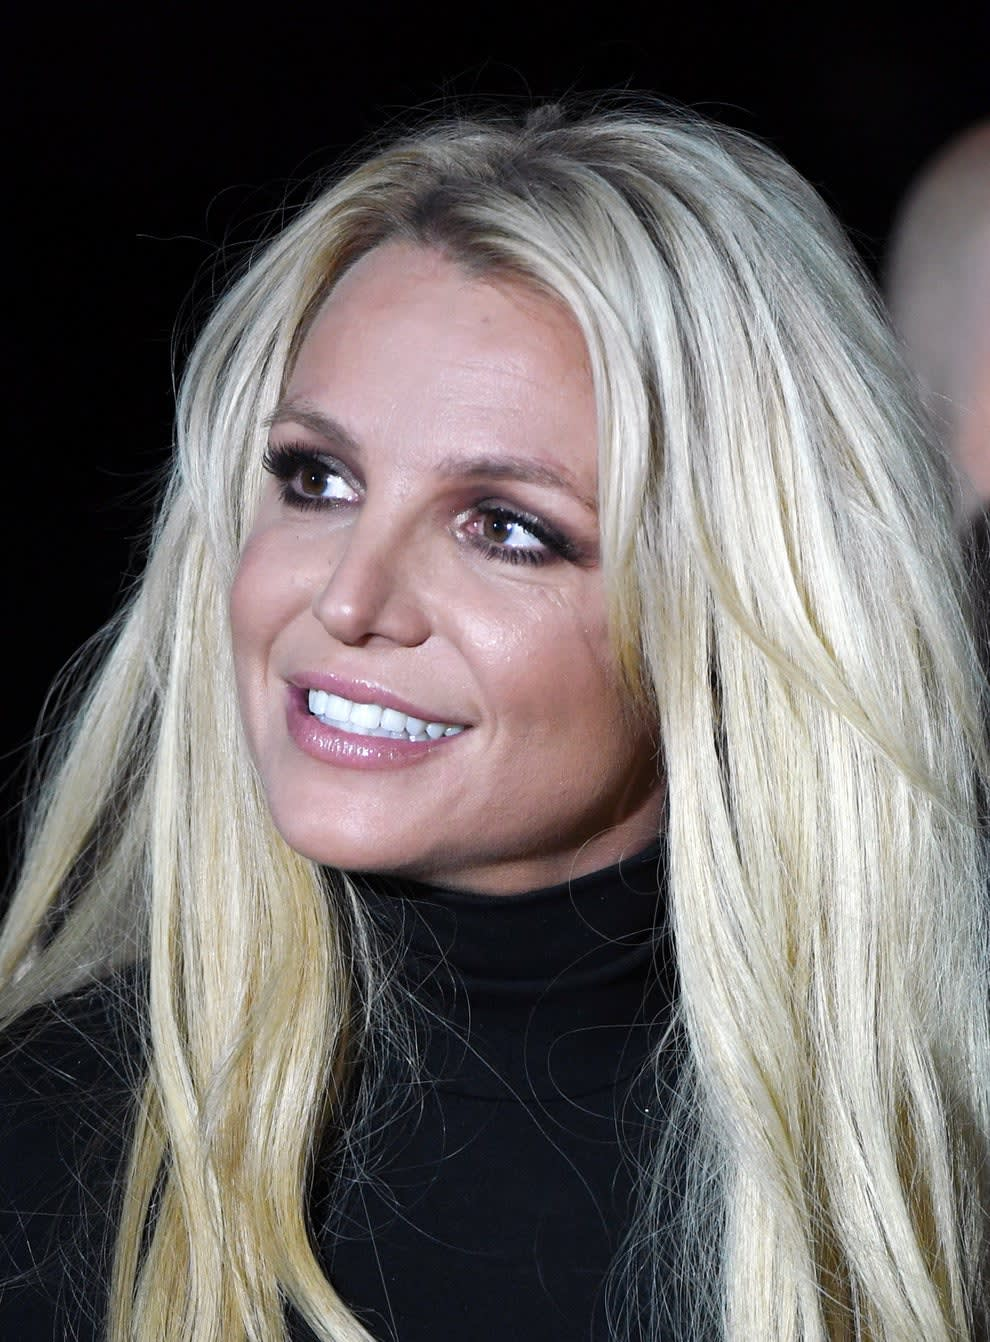 Spears at a press conference for her Las Vegas residency in 2019